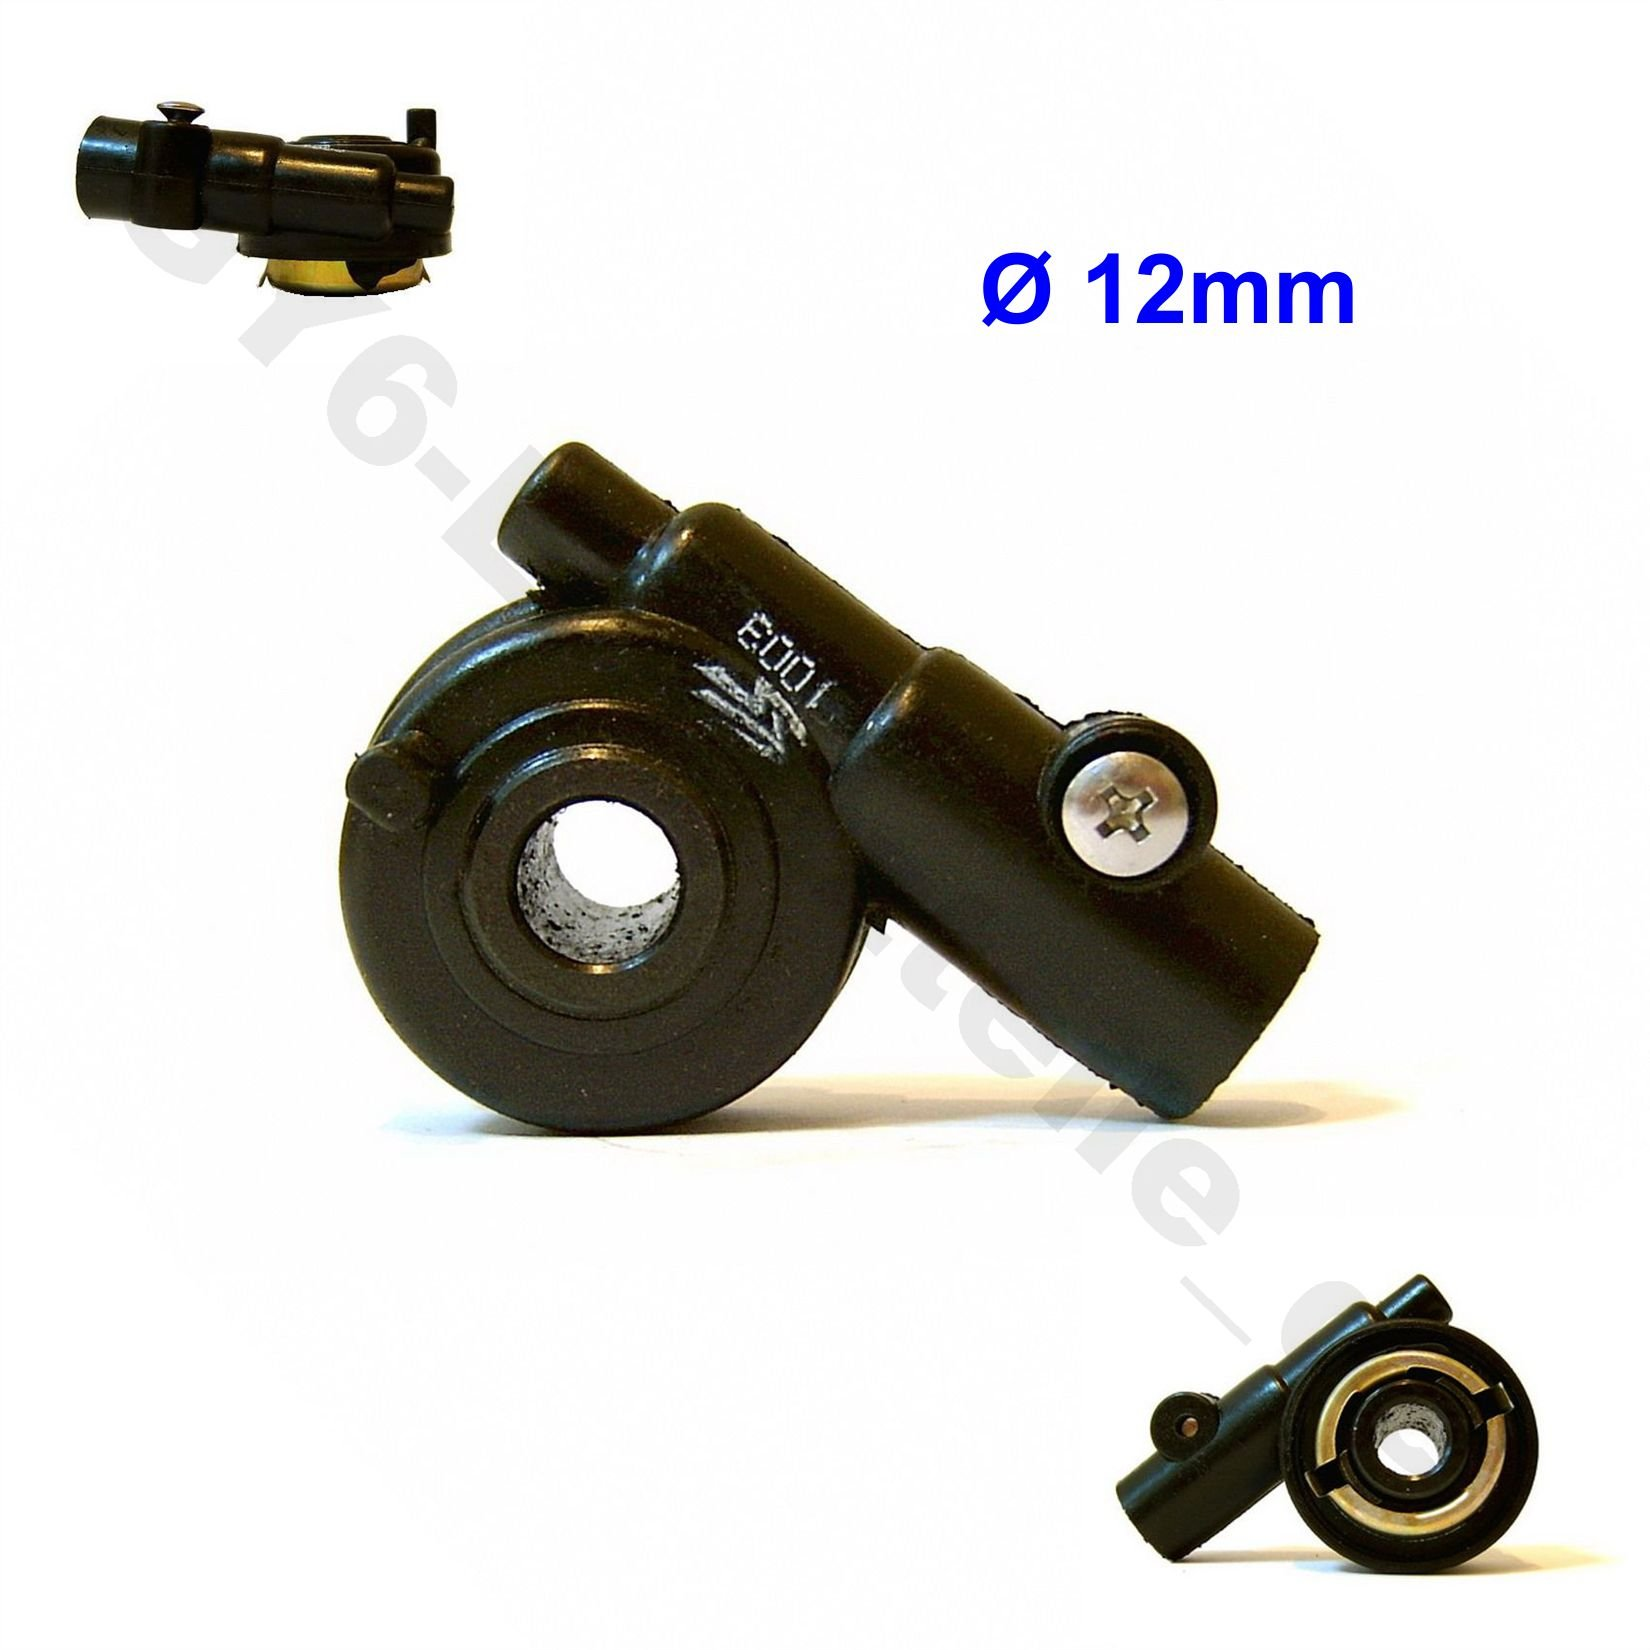 Qiilu 12mm Speedometer Drive Gear with 100cm Cable for GY6 50cc 150 cc Scooter Parts